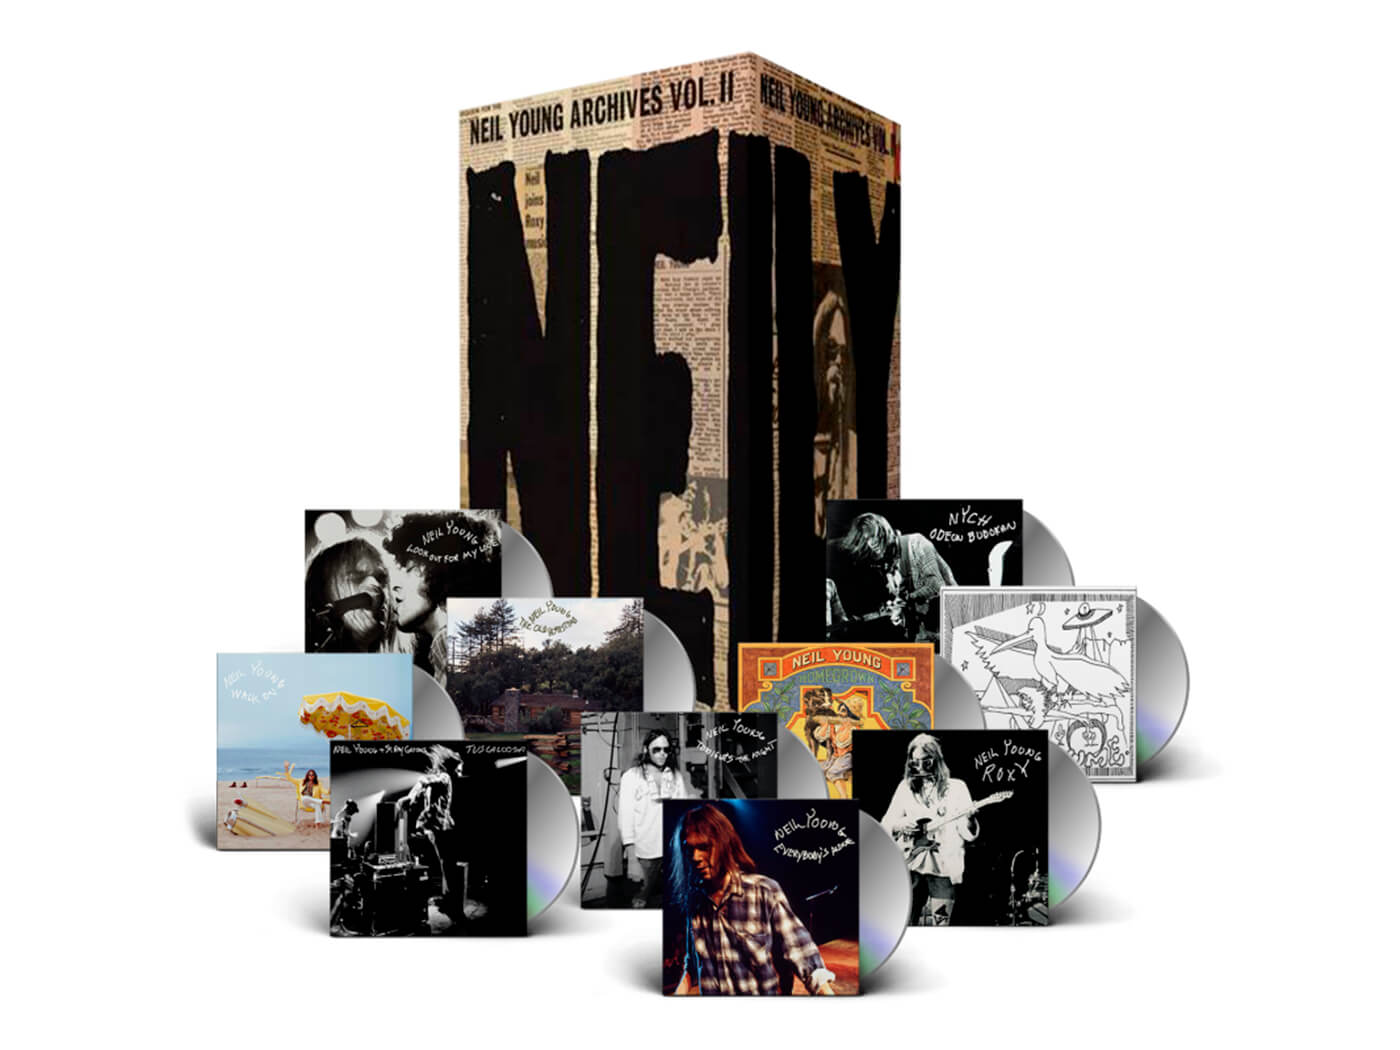 Watch the unboxing of Neil Young's Archives Vol II: 1972-1976